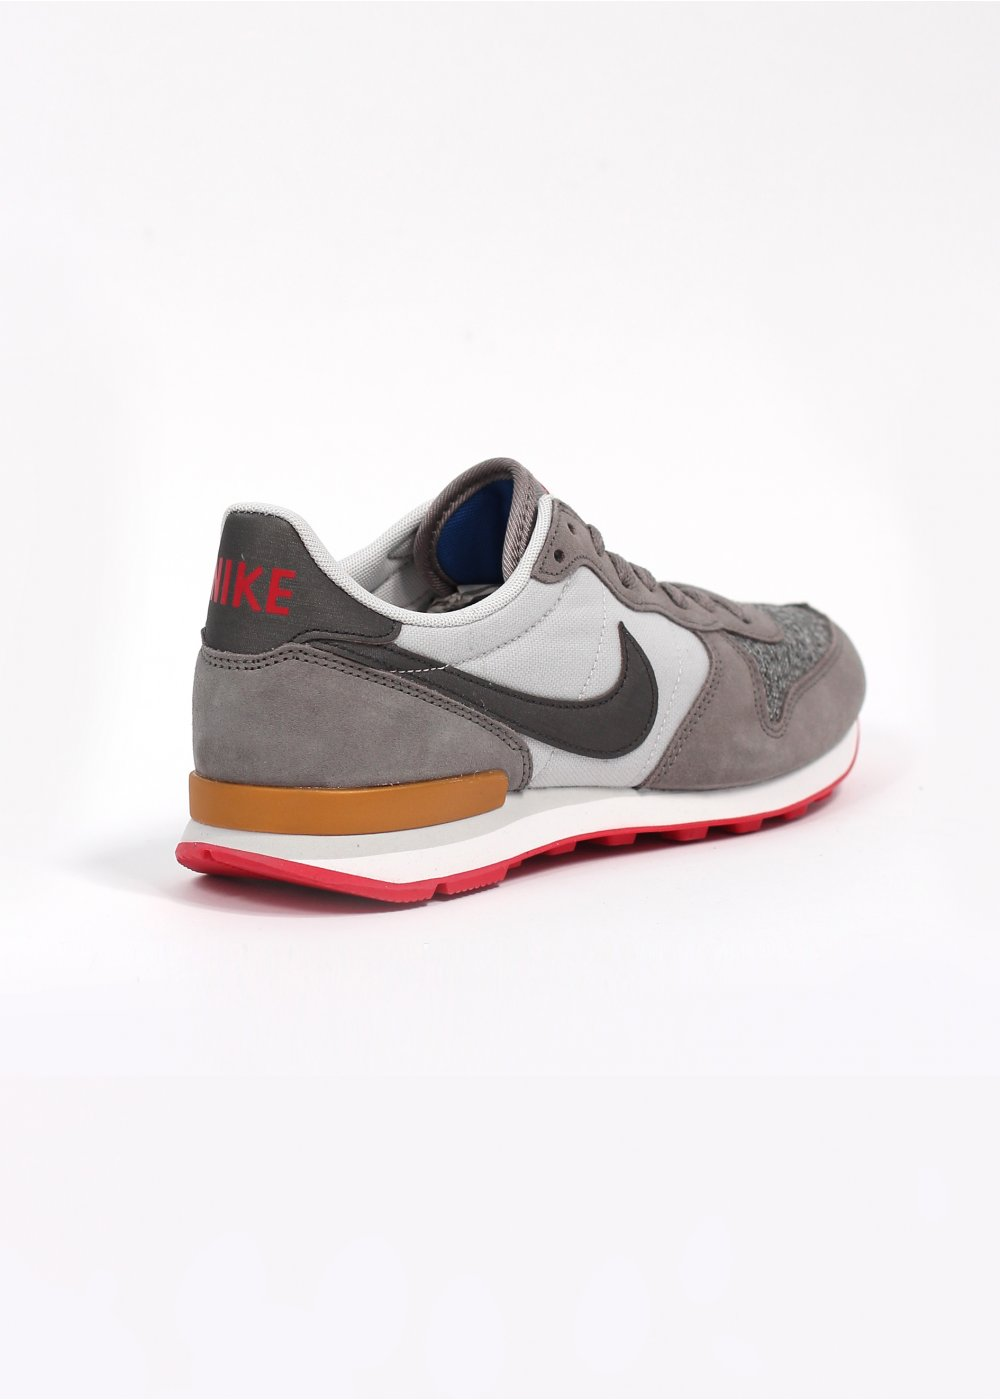 sports shoes c5a48 6237c ... city 2018 white sports shoes ft0079 new style nike air max 90 gs cheap  qs internationalist milan 039city pack039 trainers light ash 23131 12121 ...